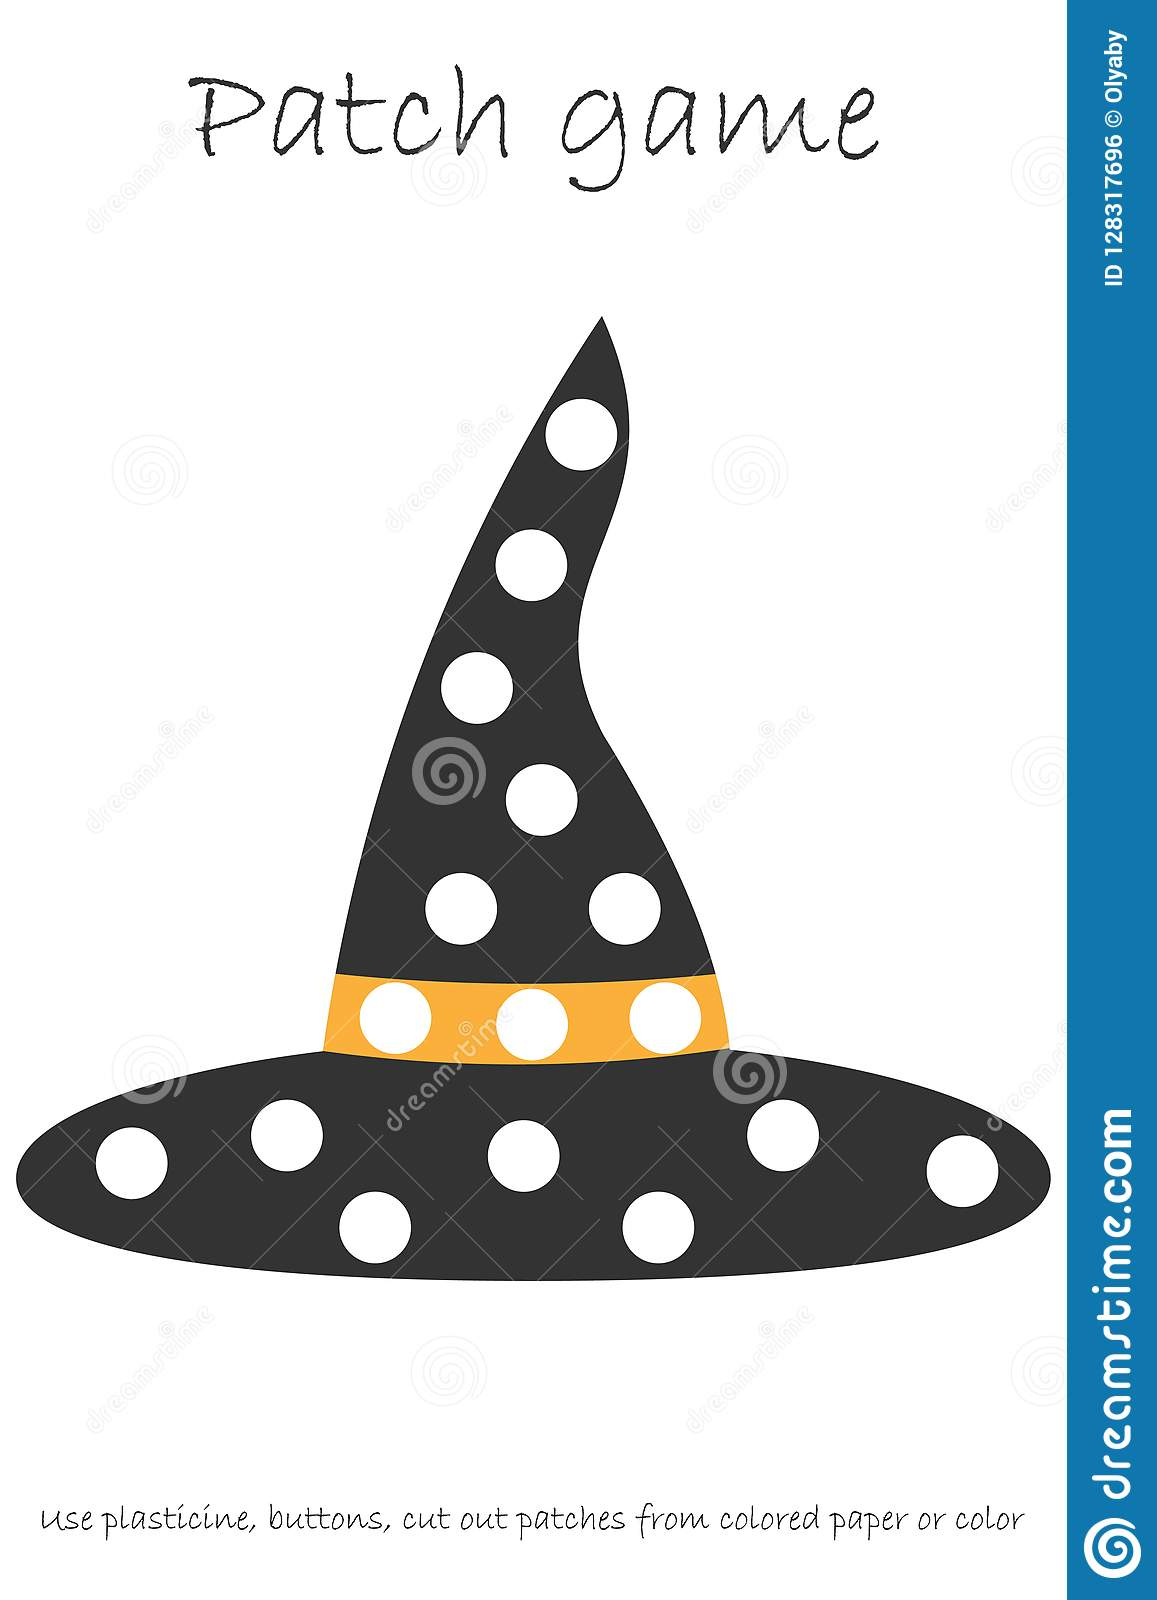 Education Patch Game Witch Hat For Children To Develop